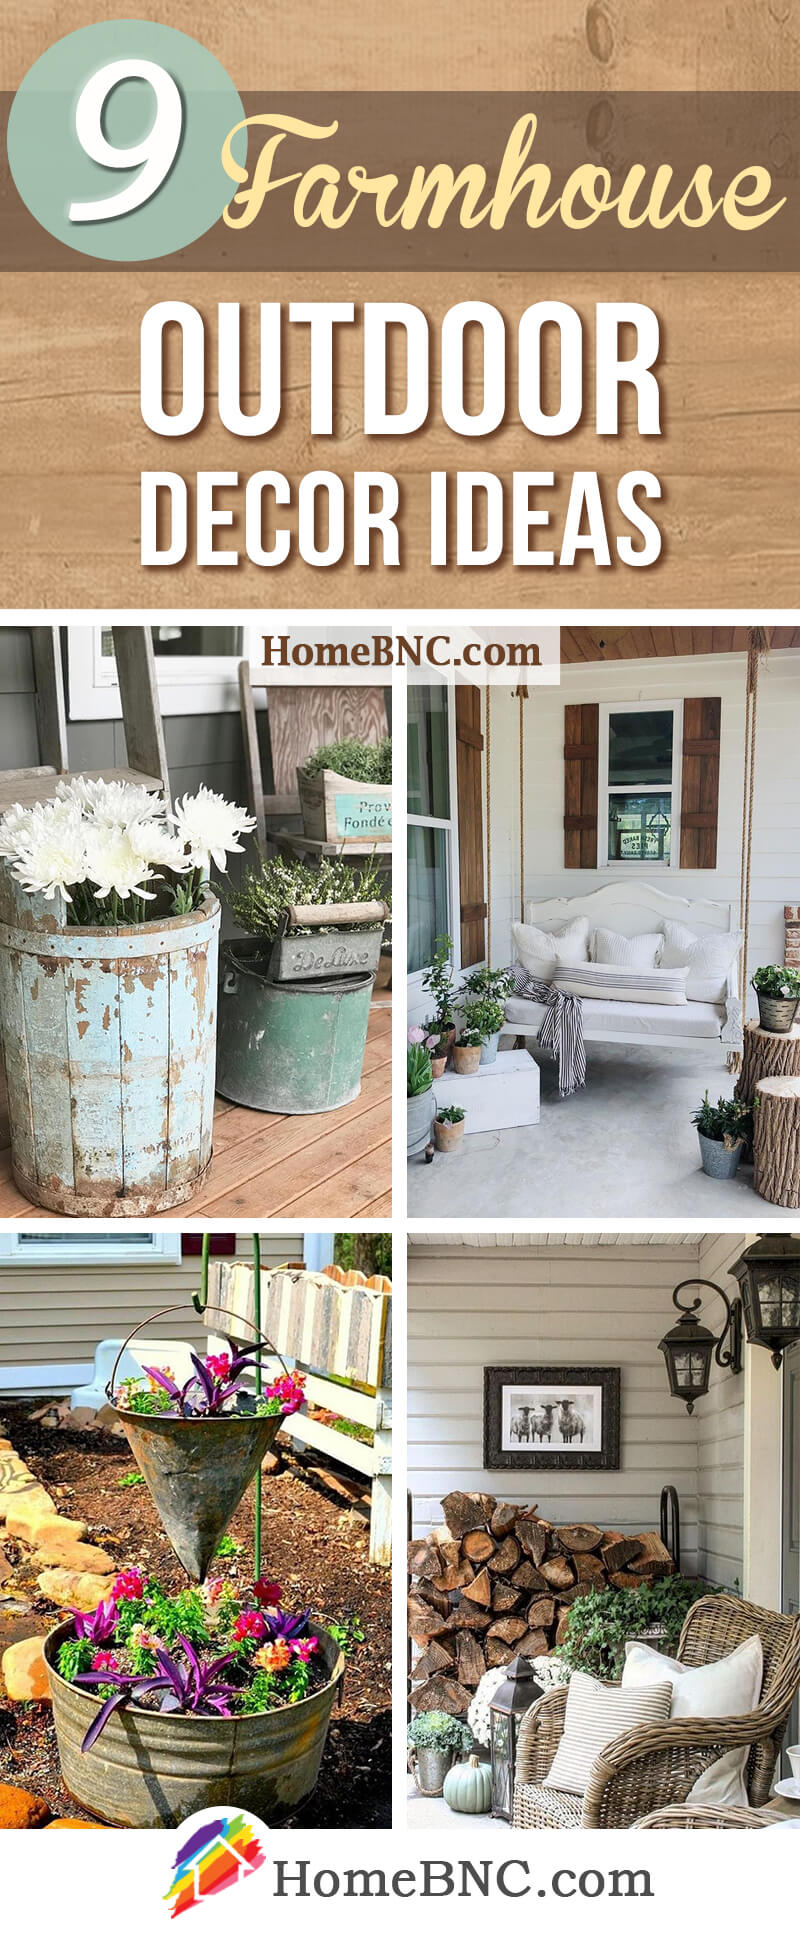 9 Best Farmhouse Outdoor Decor Ideas and Designs for 2018 on Backyard Garden Decor id=91784